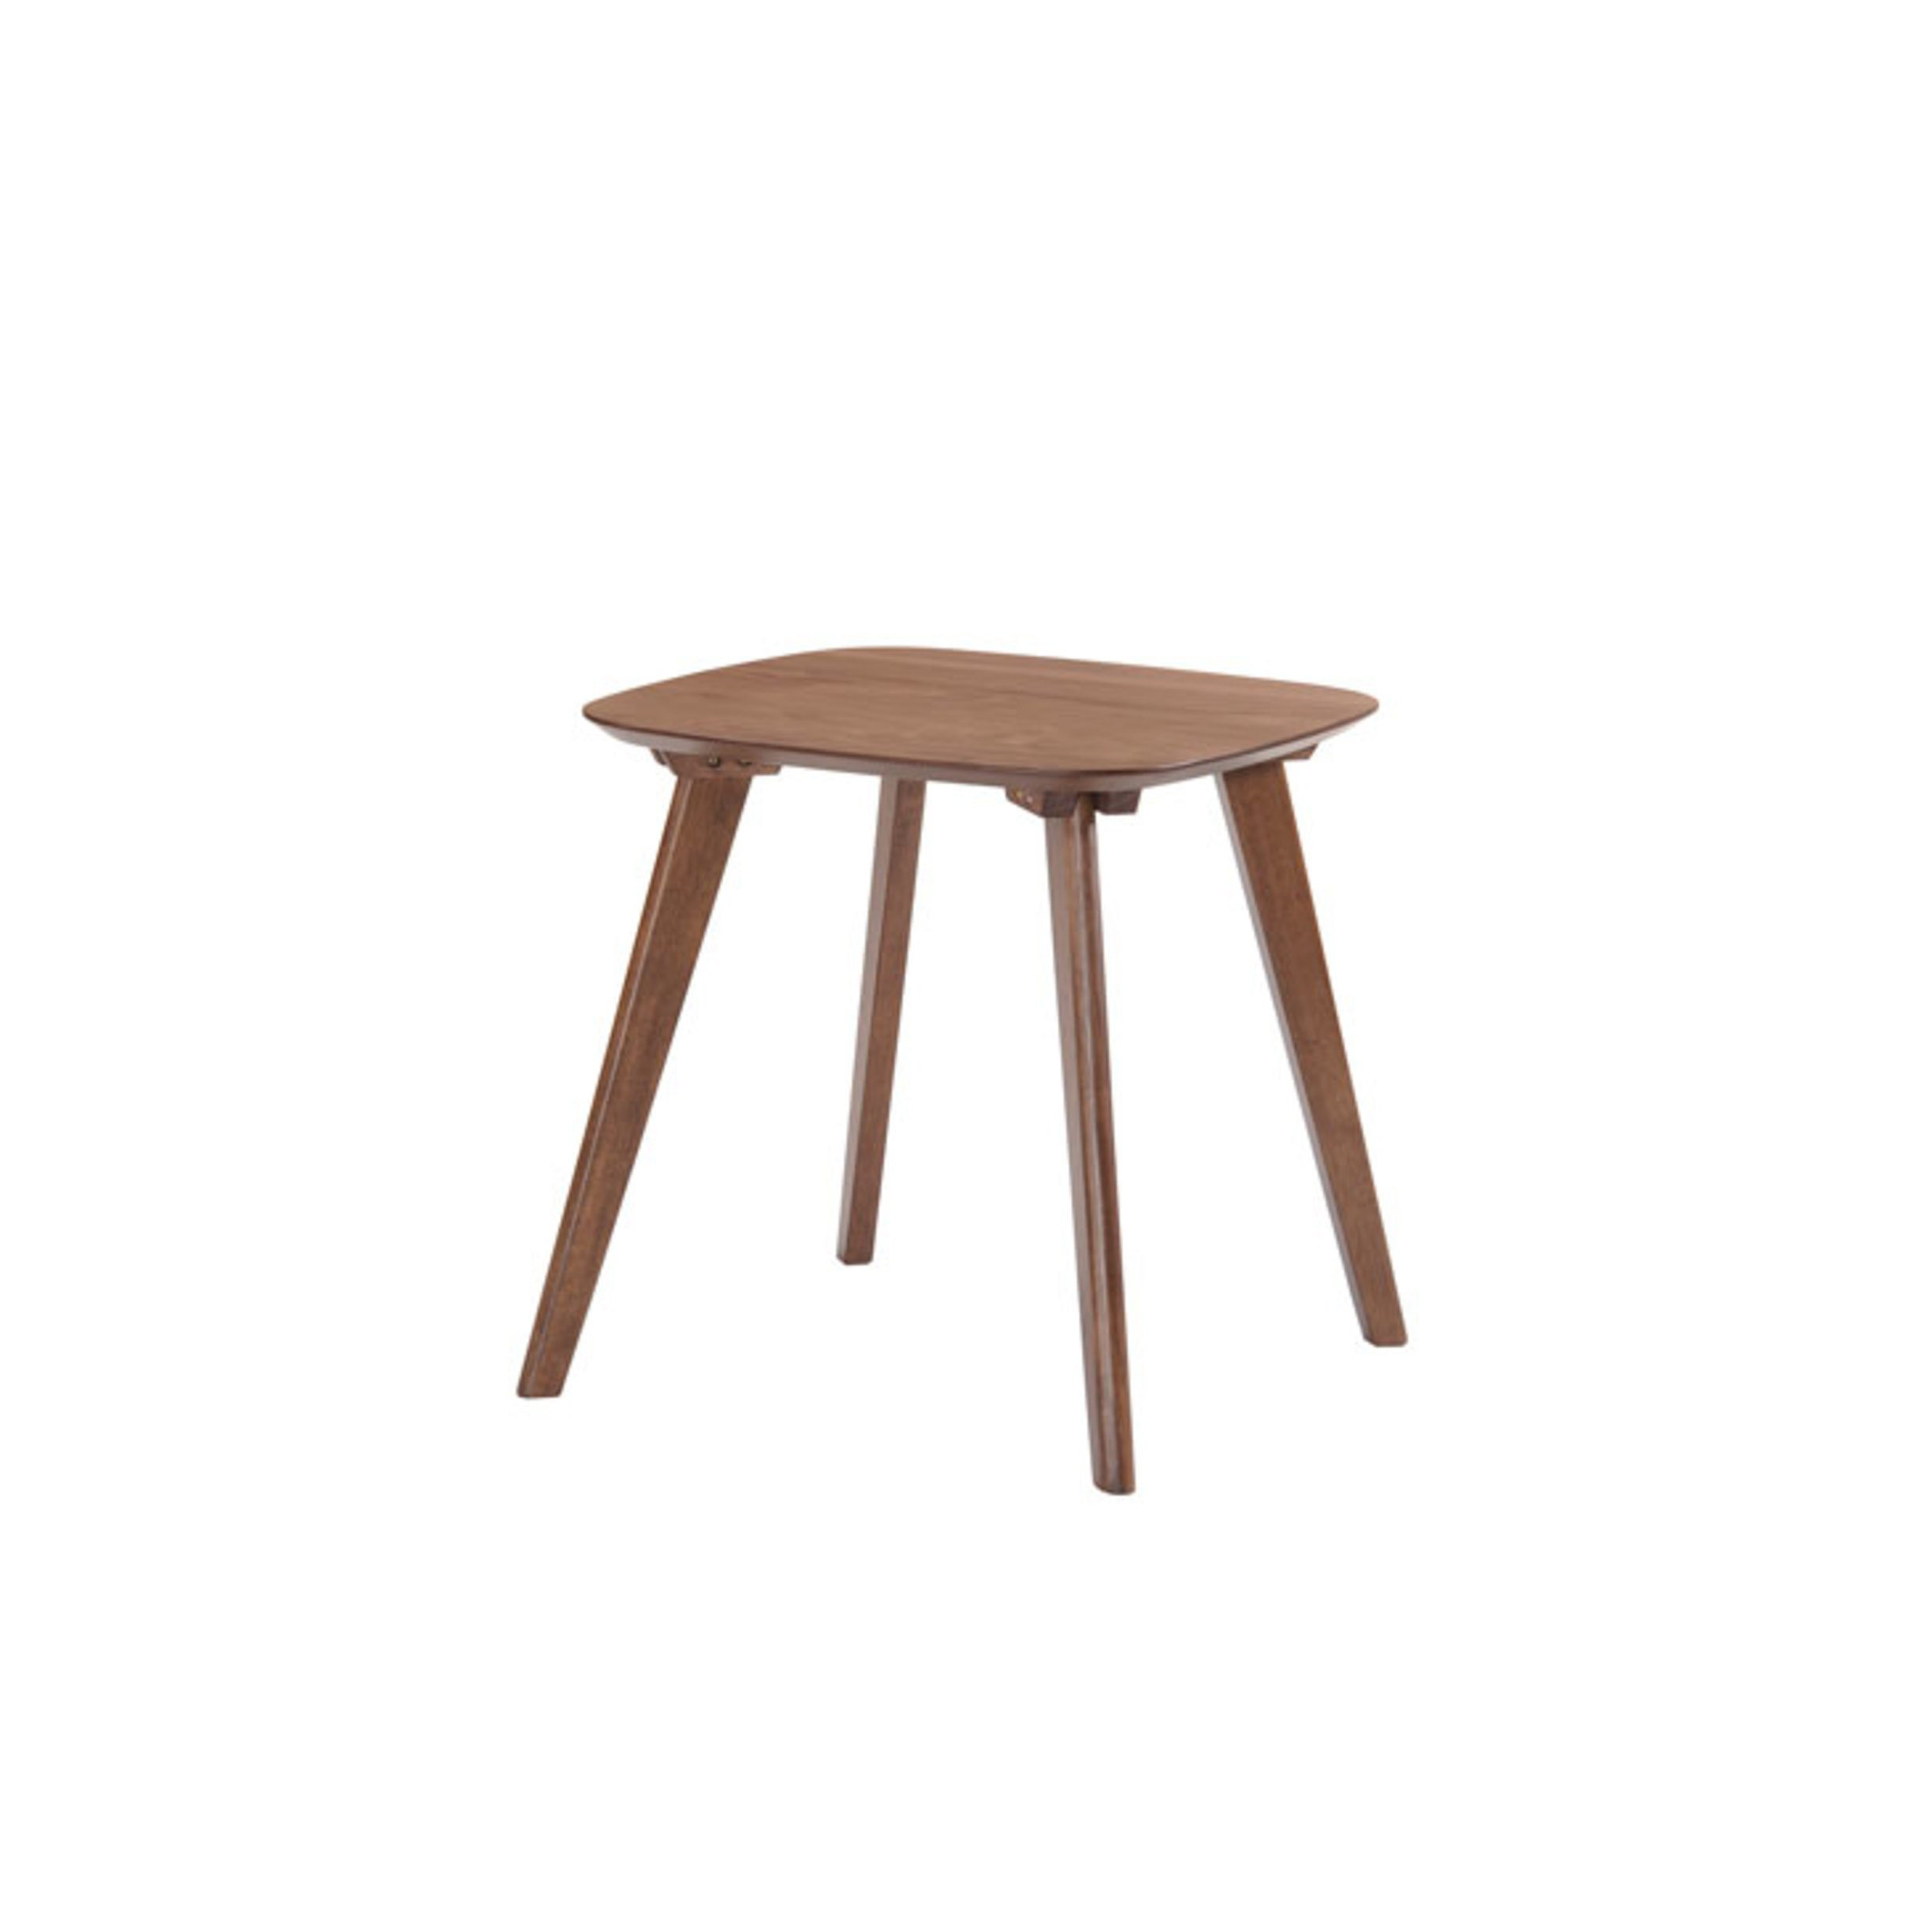 Emerald Home Simplicity Walnut Brown End Table with Curved Top and Round, Slanted Legs